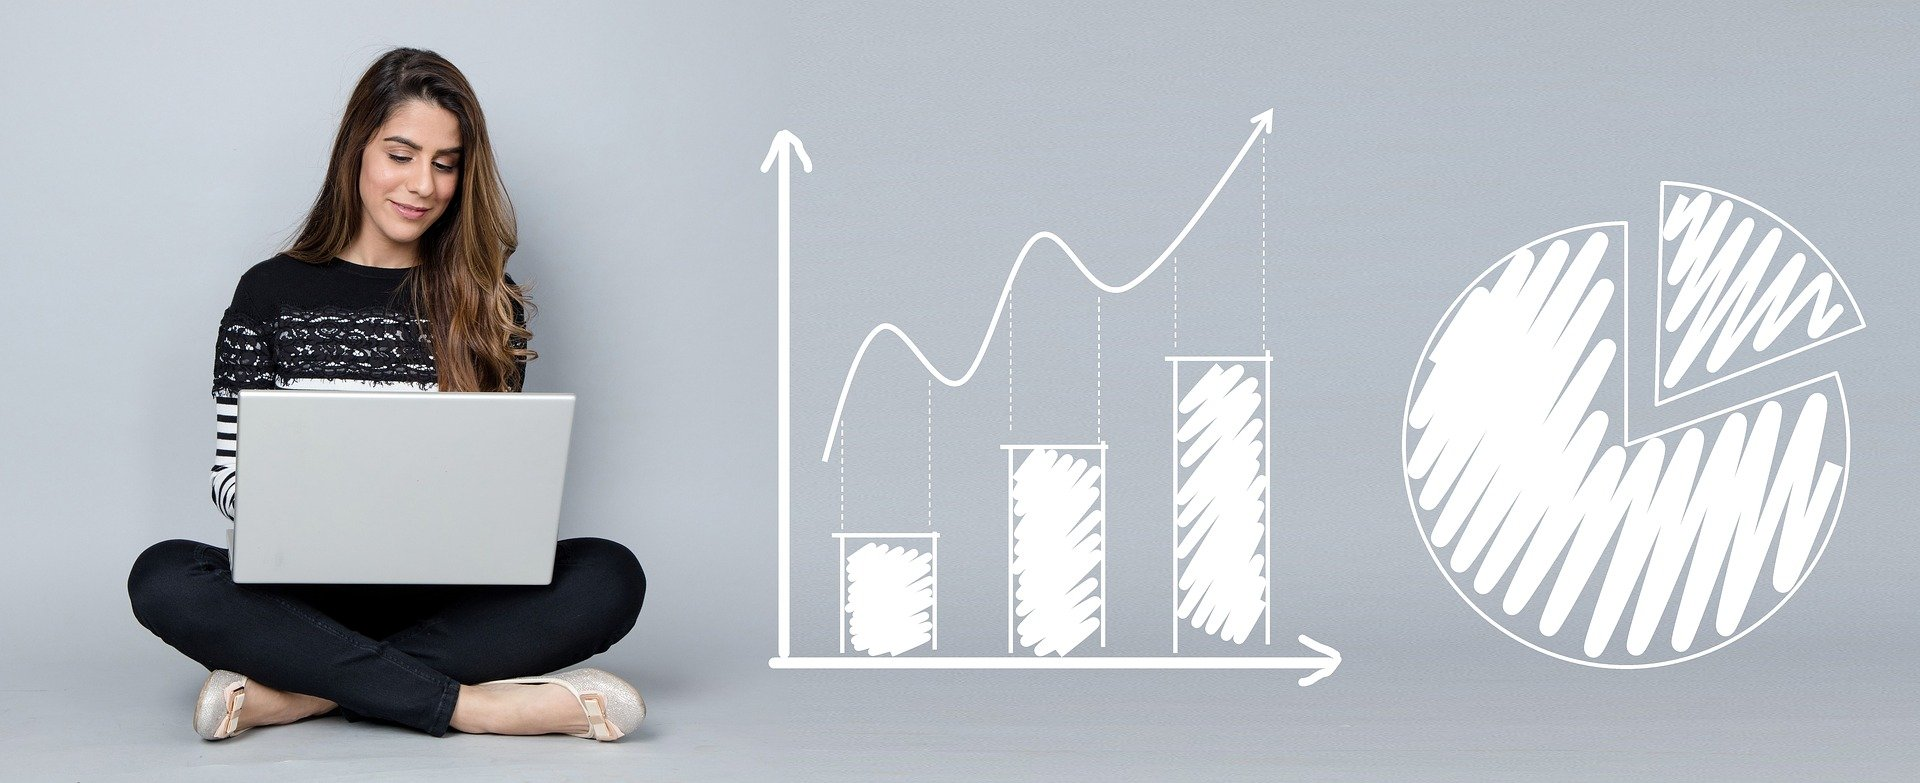 Woman writing custom content with graphs showing an increase in website traffic analytics